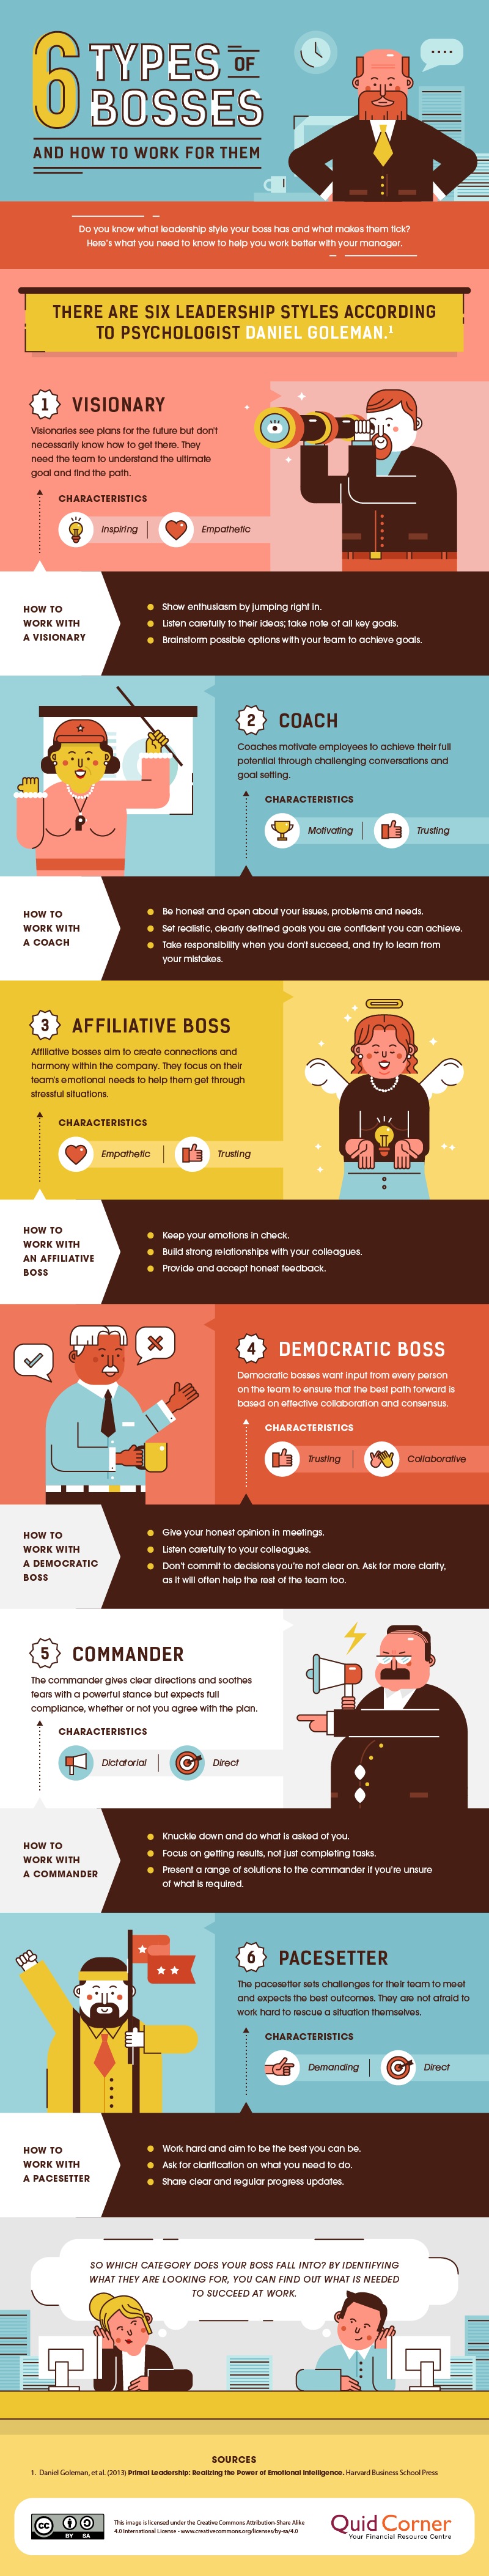 DESIGN - 6 types of bosses (and how to work for them)